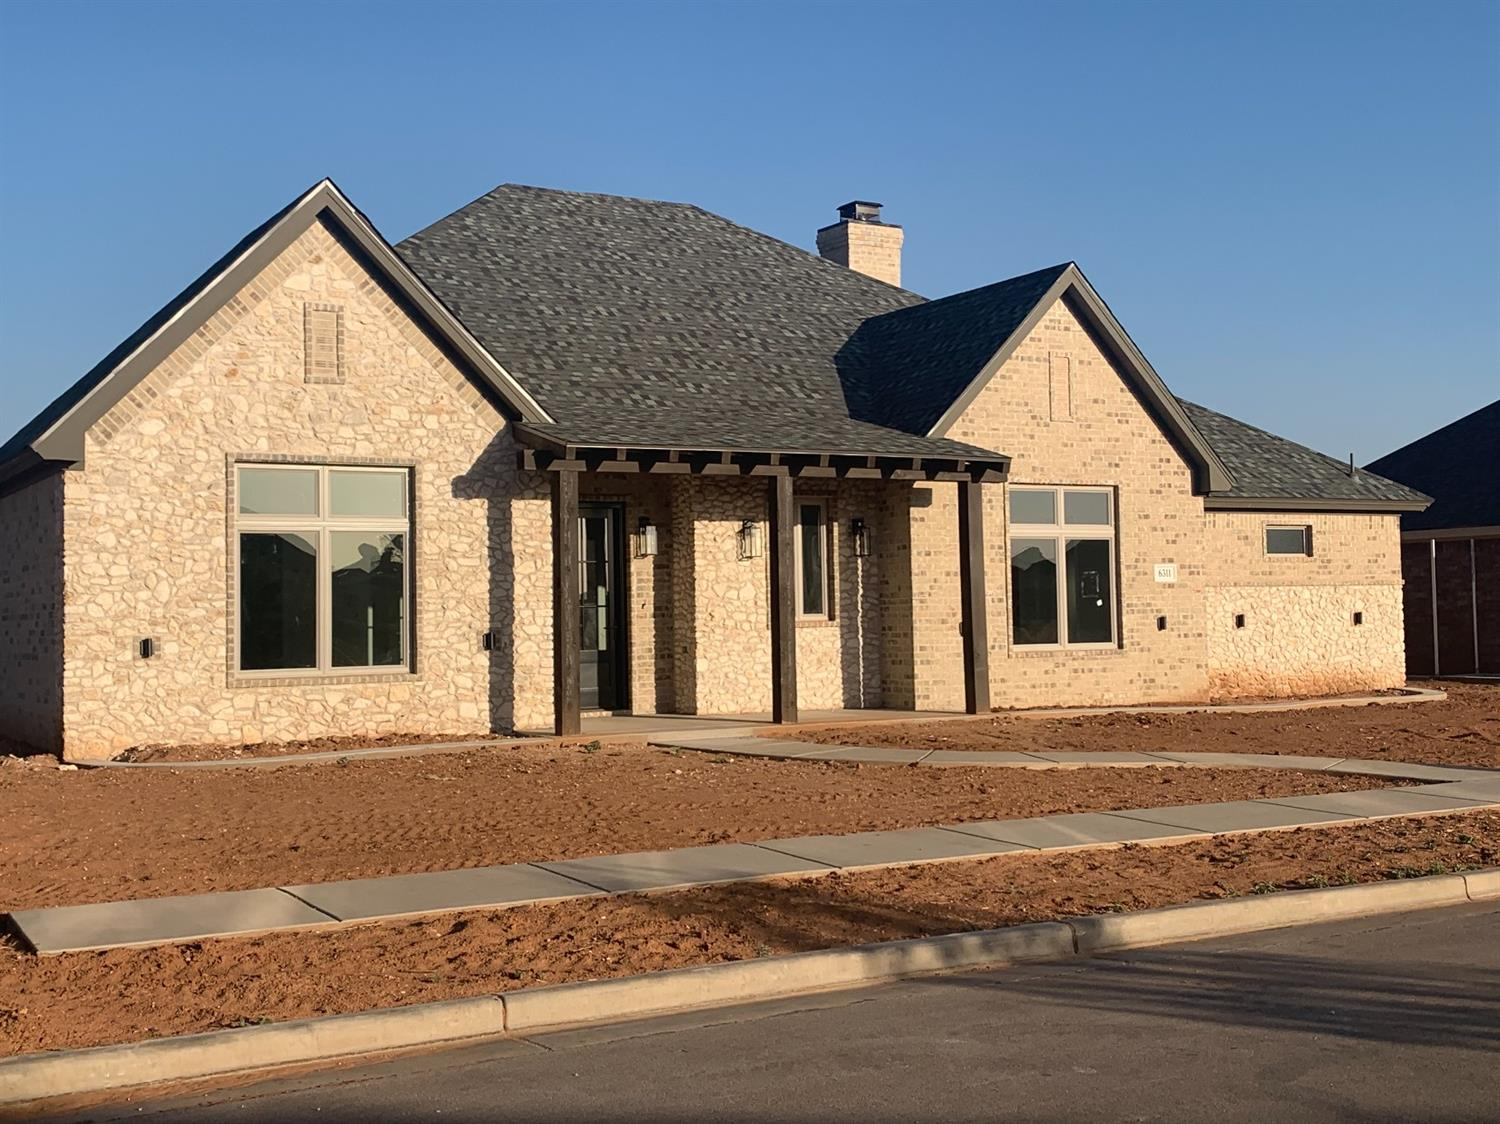 Undeniably unique home built in 2020 by Brick + Boulder. Features open concept living and kitchen. 3 bed, 2.5 bath, separate office and 2 car garage. Luxury finishes include quartz kitchen countertops, Frigidaire professional  stainless steel appliances; 2 fridges 2 gas ranges, built in microwave, and dishwasher. Details to note include soapstone fireplace surround, luxury vinyl plank flooring, designer lighting and custom designed cabinetry. Located in the highly desirable 'The Trails' subdivision, which includes access to multiple private parks and play grounds. Frenship school district.